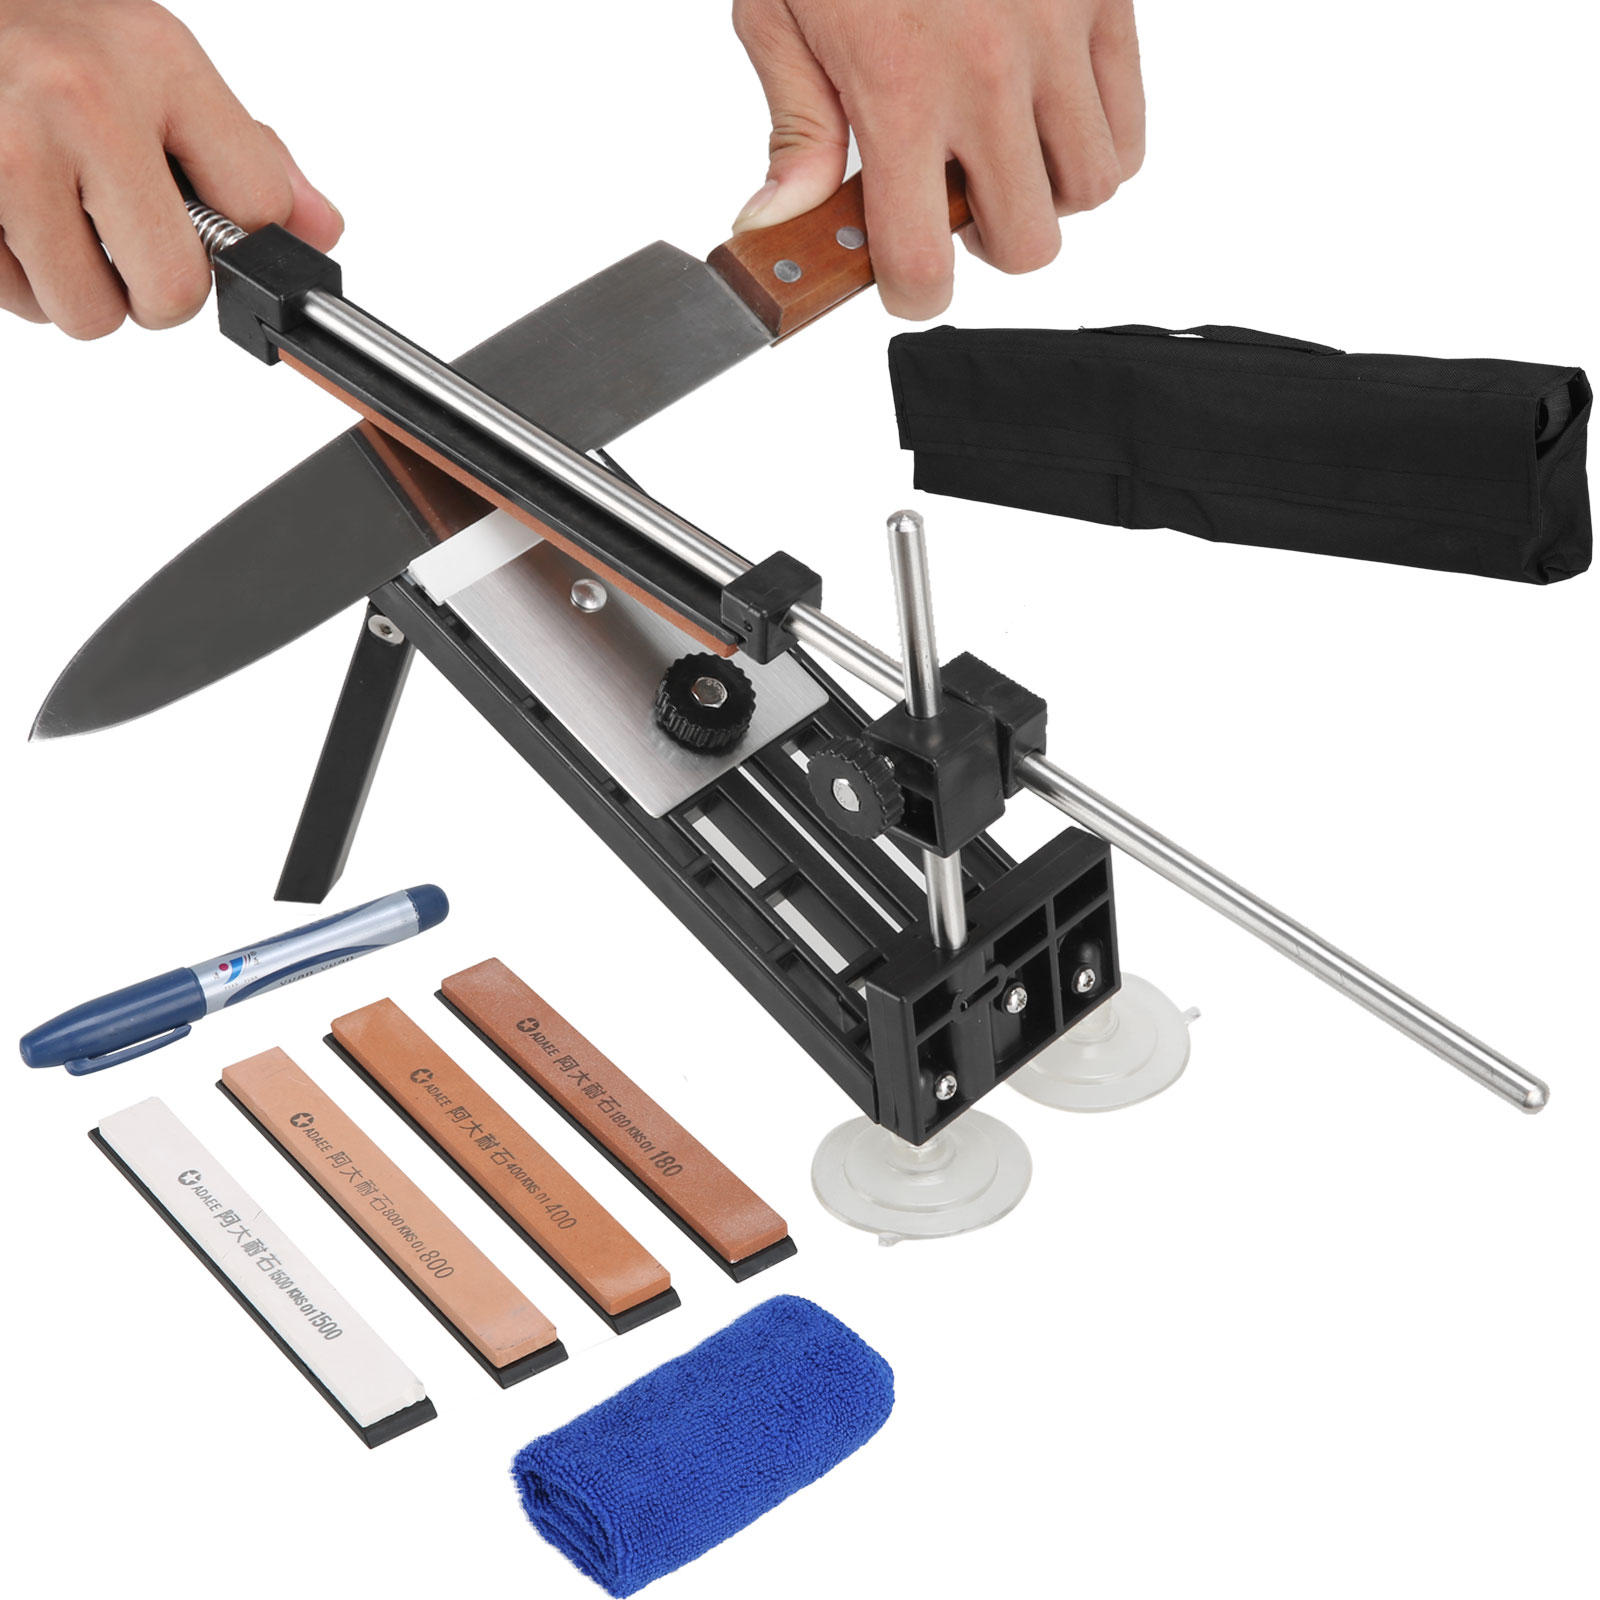 Professional Kitchen Knife Sharpener System Fix-angle with 4 Stones For Kitchen Knife by